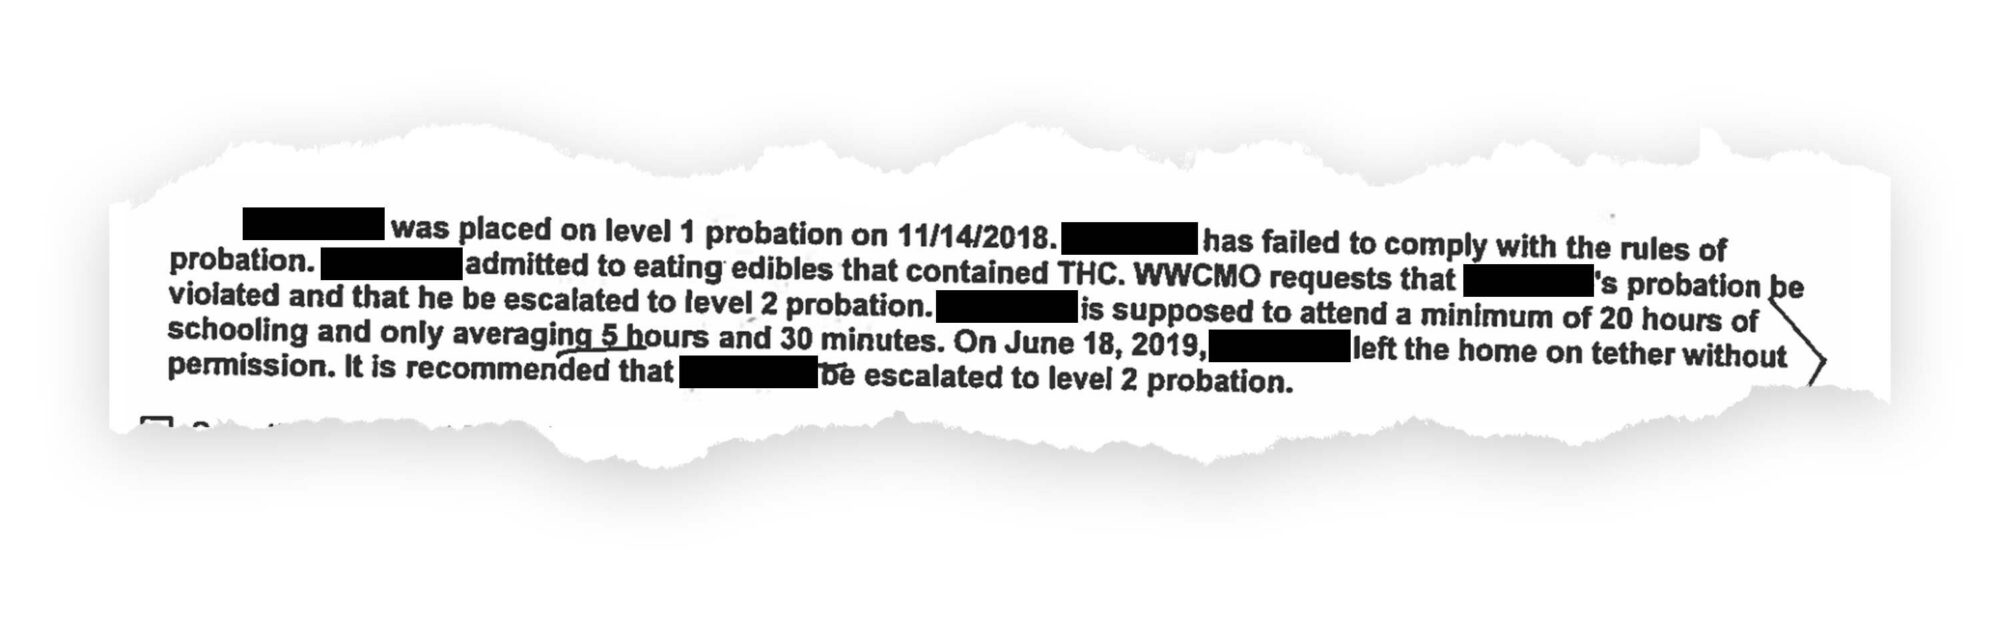 Probation document excerpt, with names redacted.